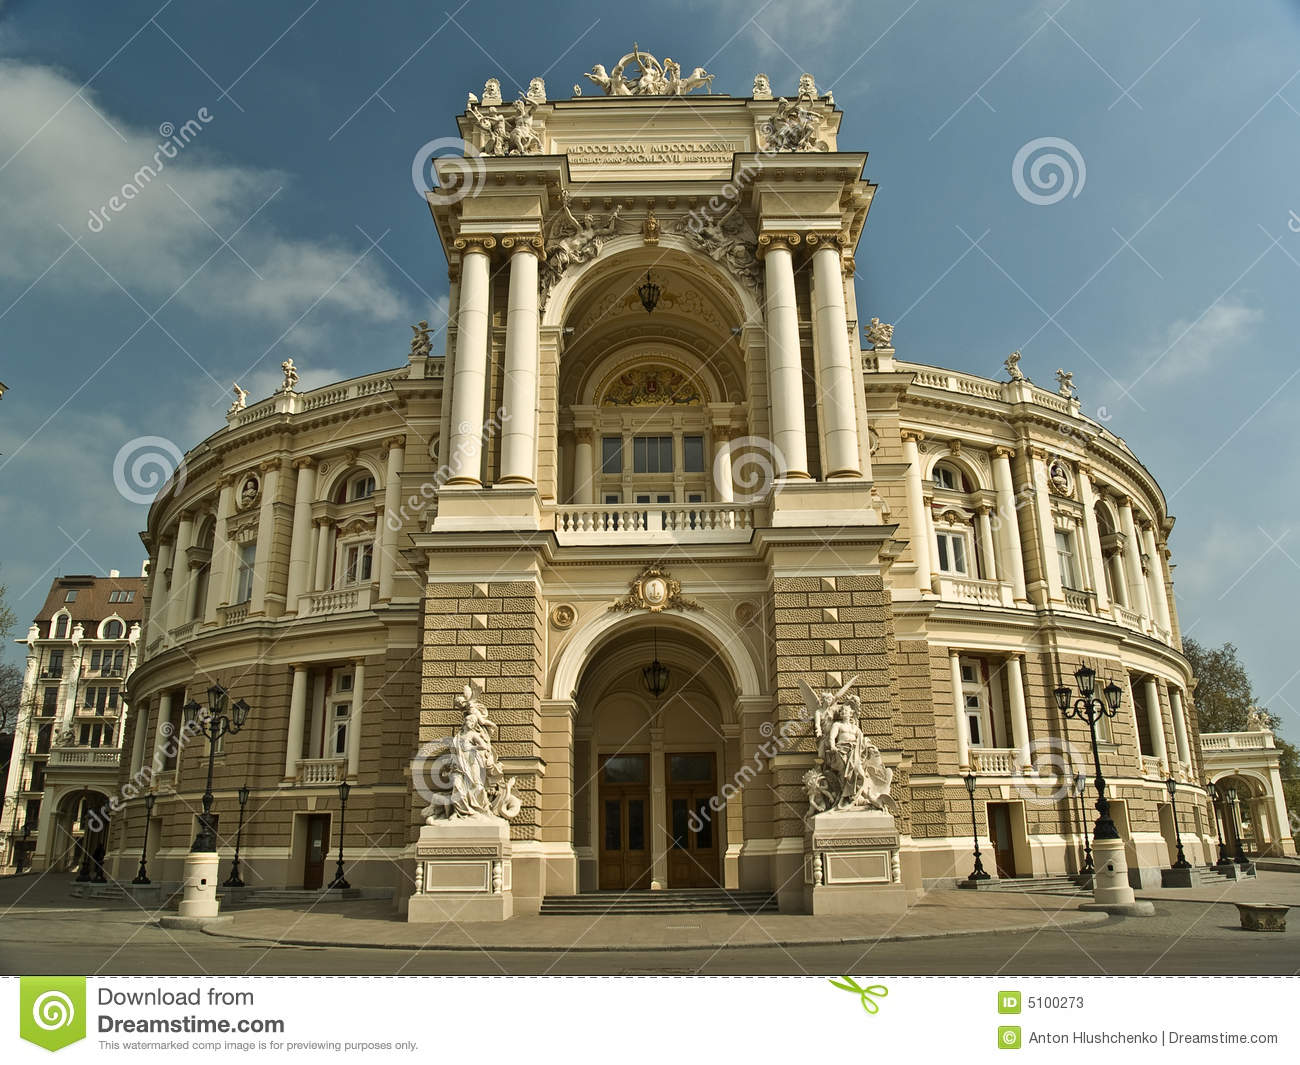 Opera Theatre Building In Odessa Ukraine Stock Photos - Image: 5100273